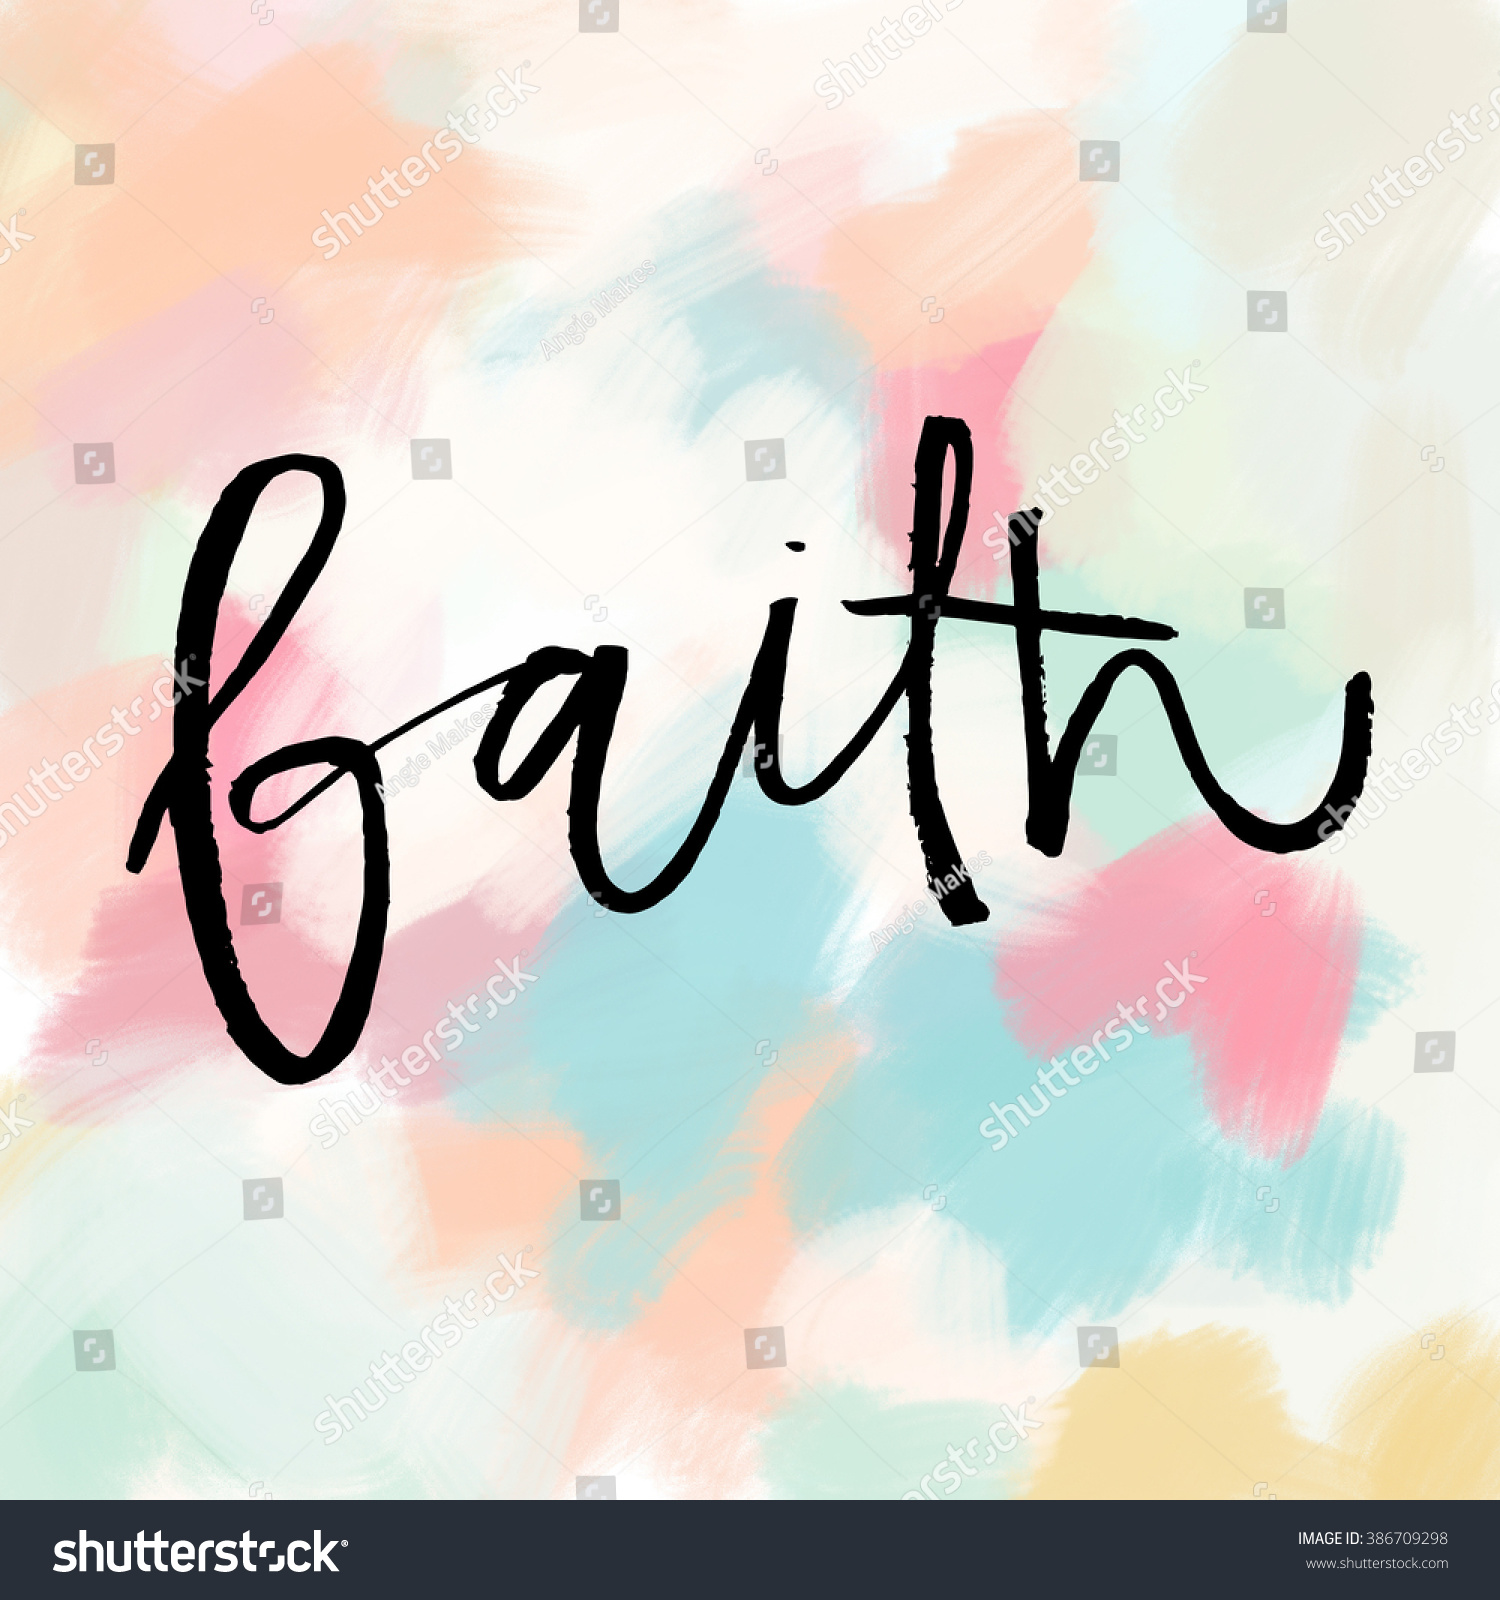 Image result for faith modern art